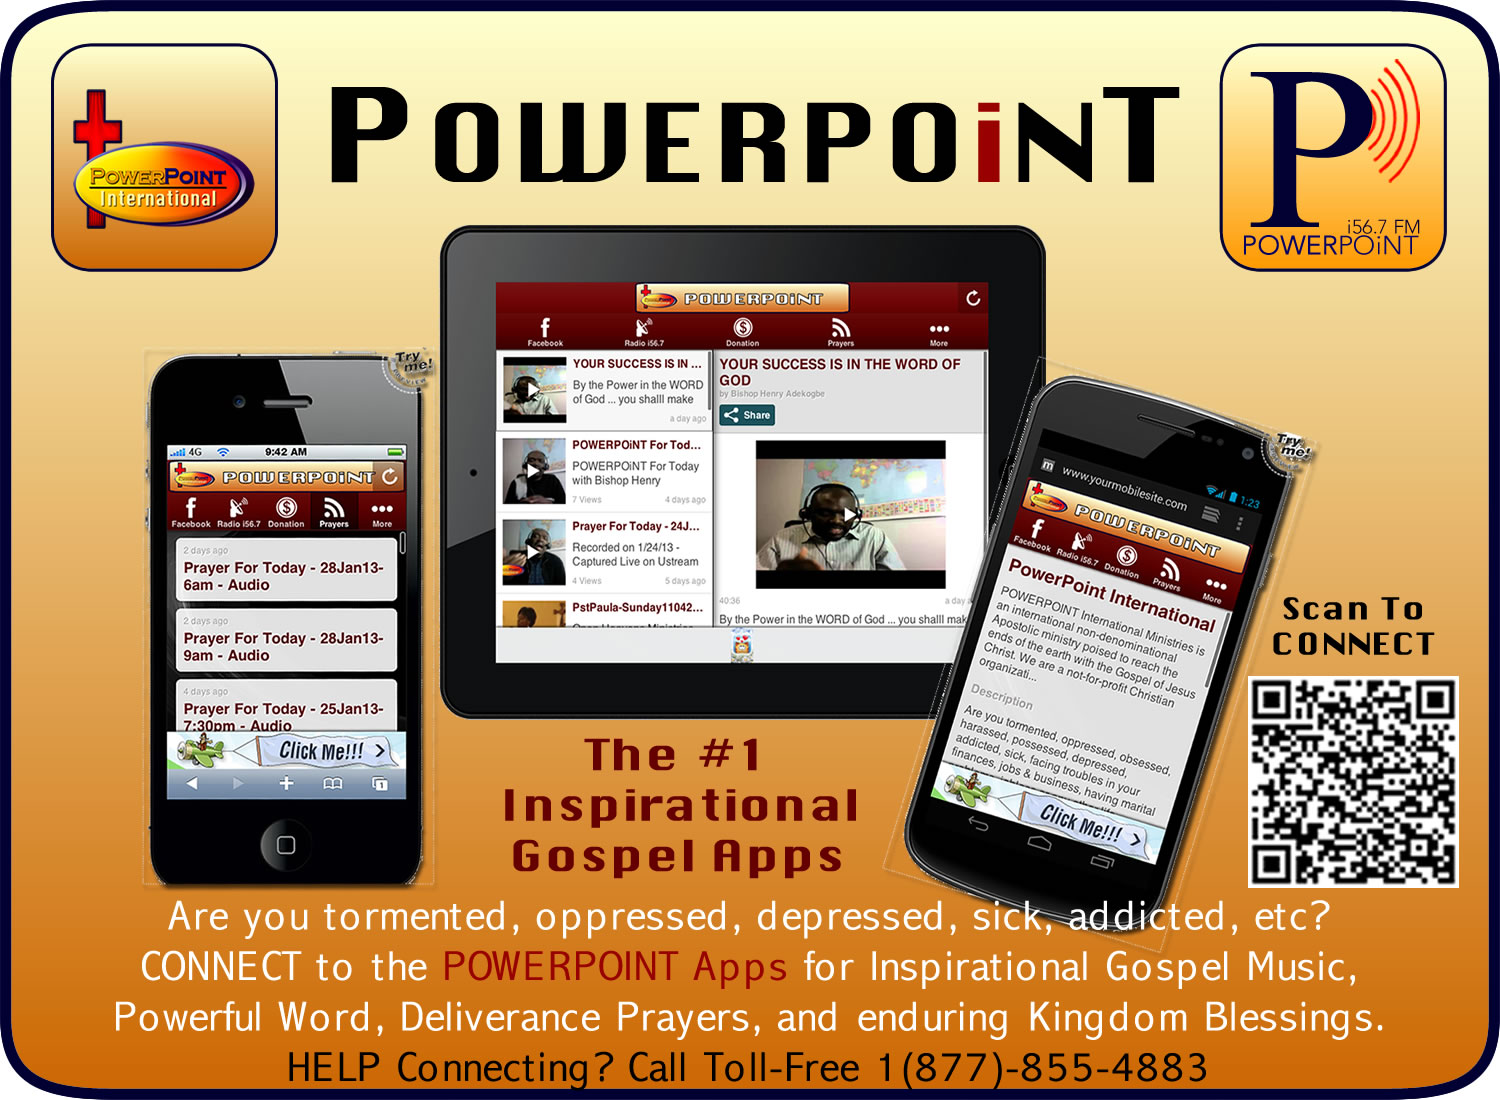 POWERPOiNT Mobile Apps